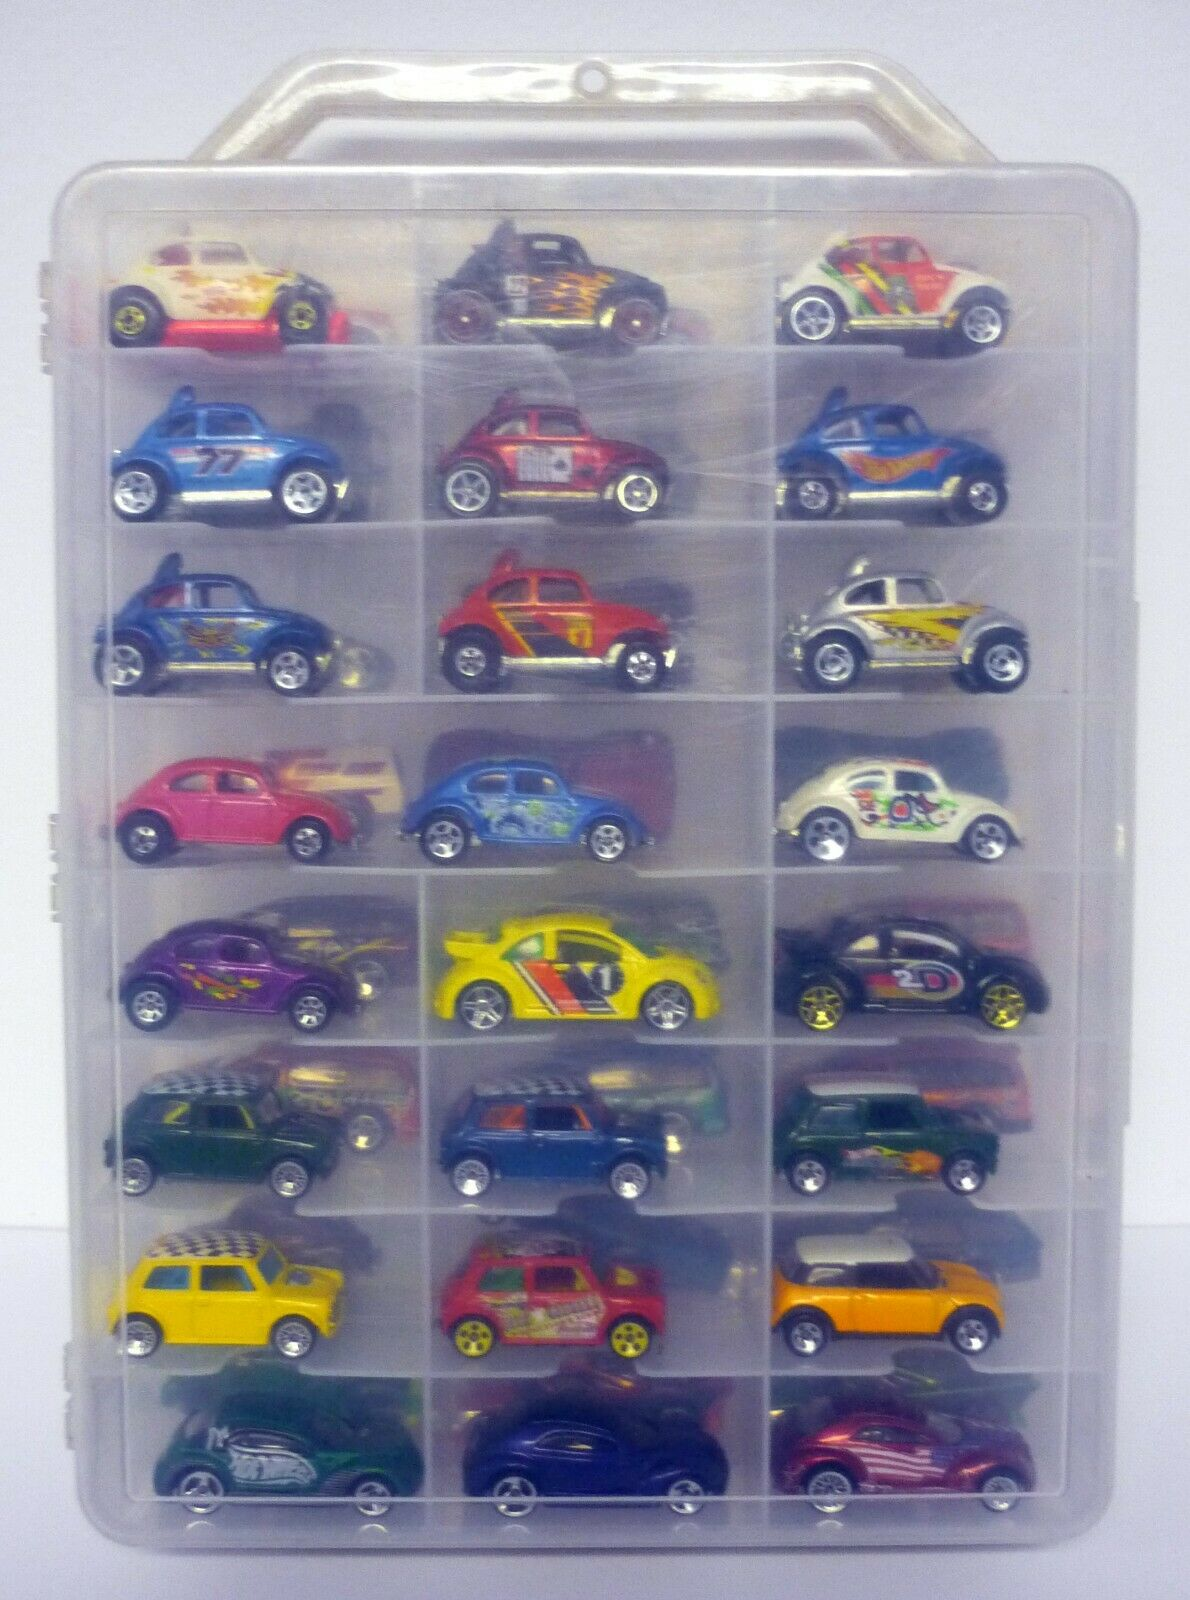 Hot Wheels 48 Estuche Con Coches de coche VW Bug varios coches de fundición